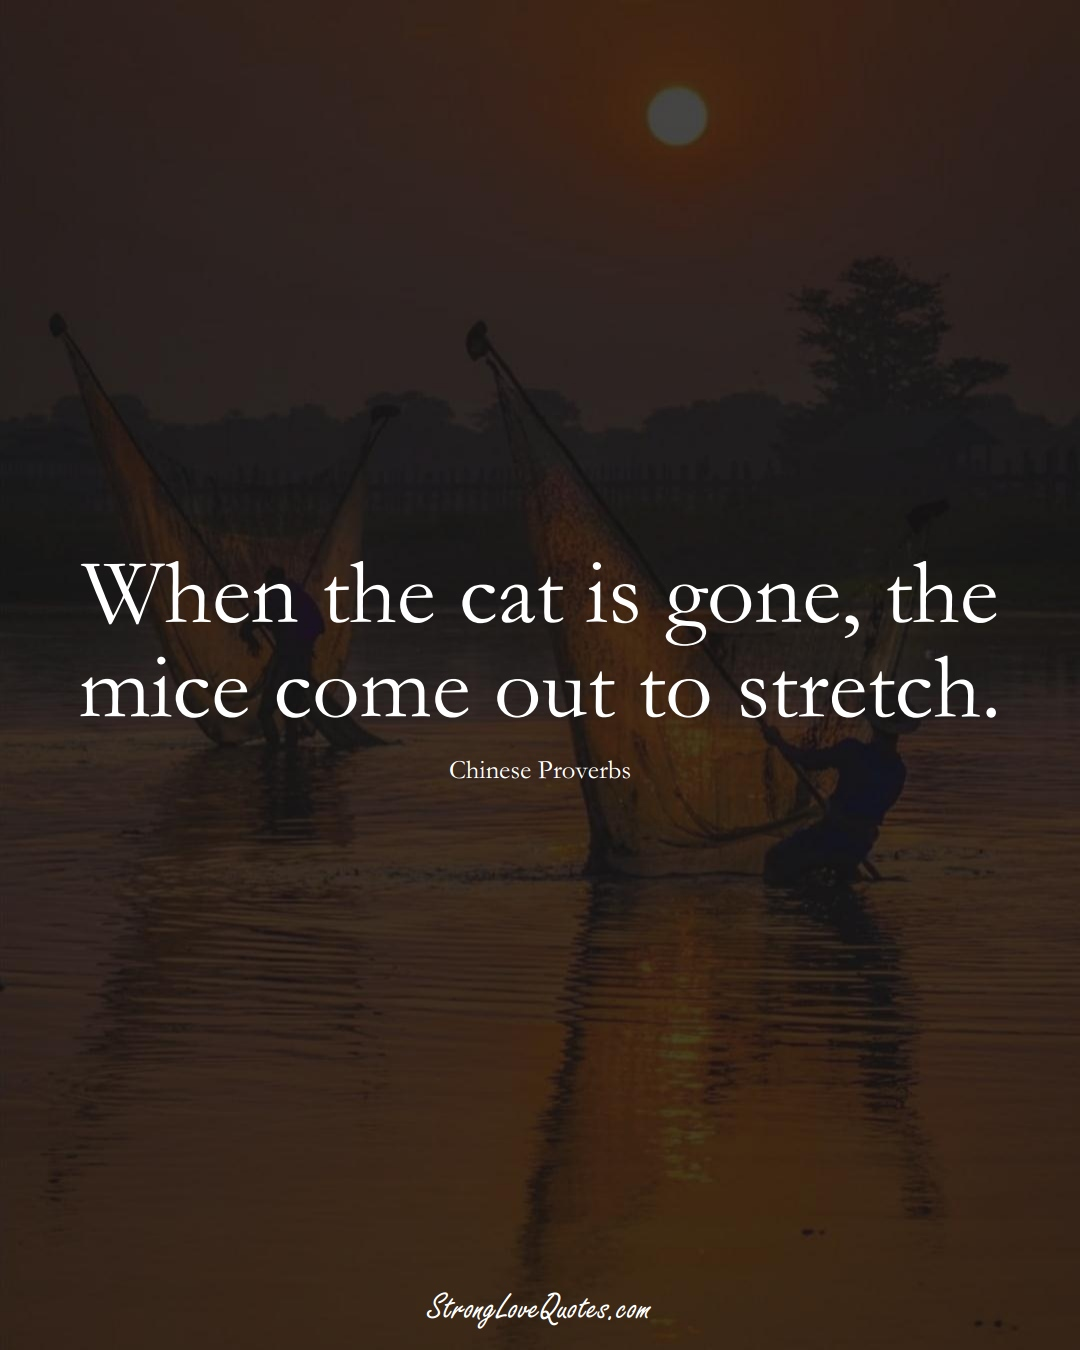 When the cat is gone, the mice come out to stretch. (Chinese Sayings);  #AsianSayings